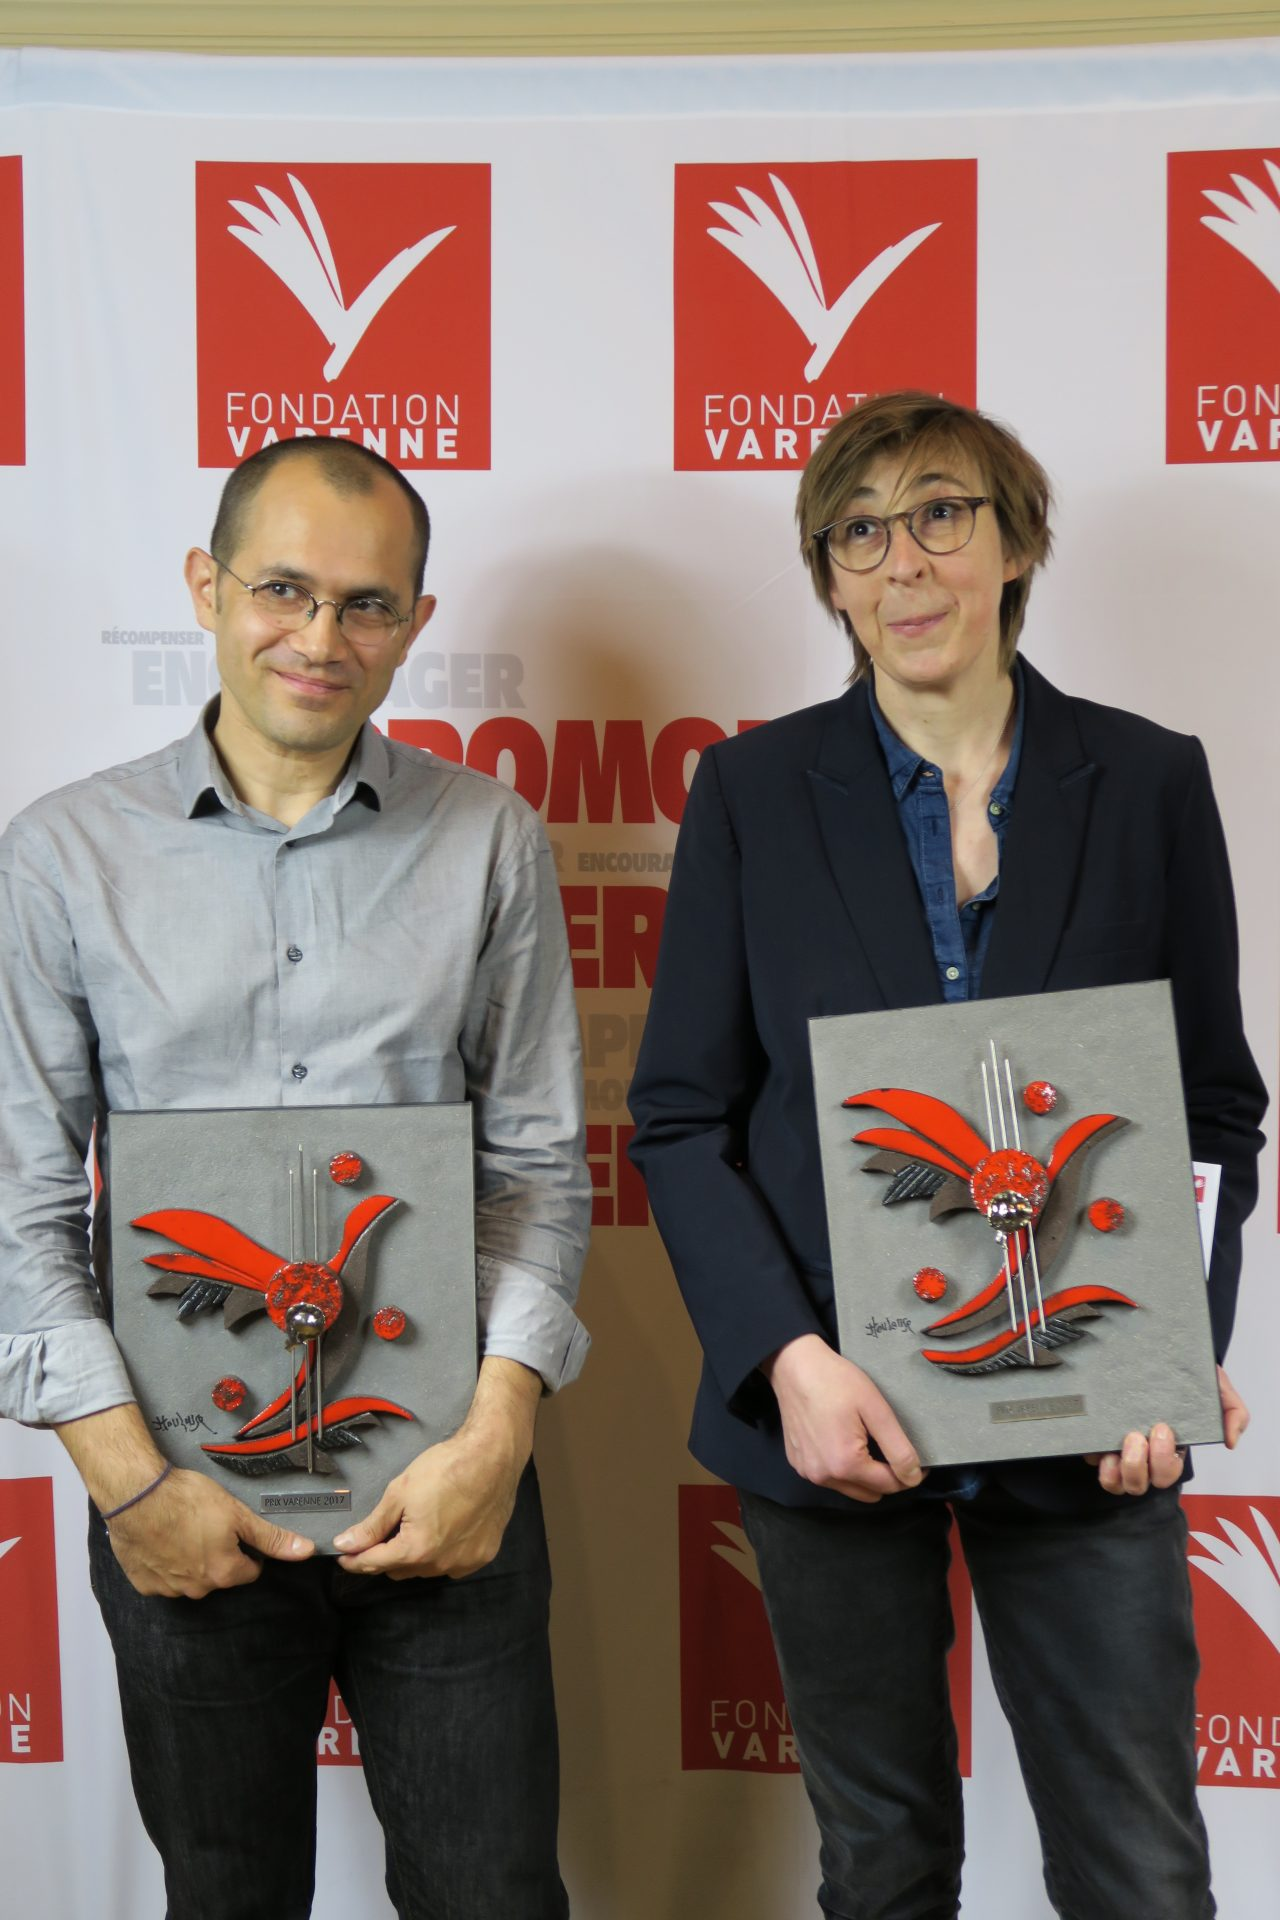 Stéphane Foucard et Stephane Horel (Le Monde) Grand Prix Varenne Presse quotidienne nationale